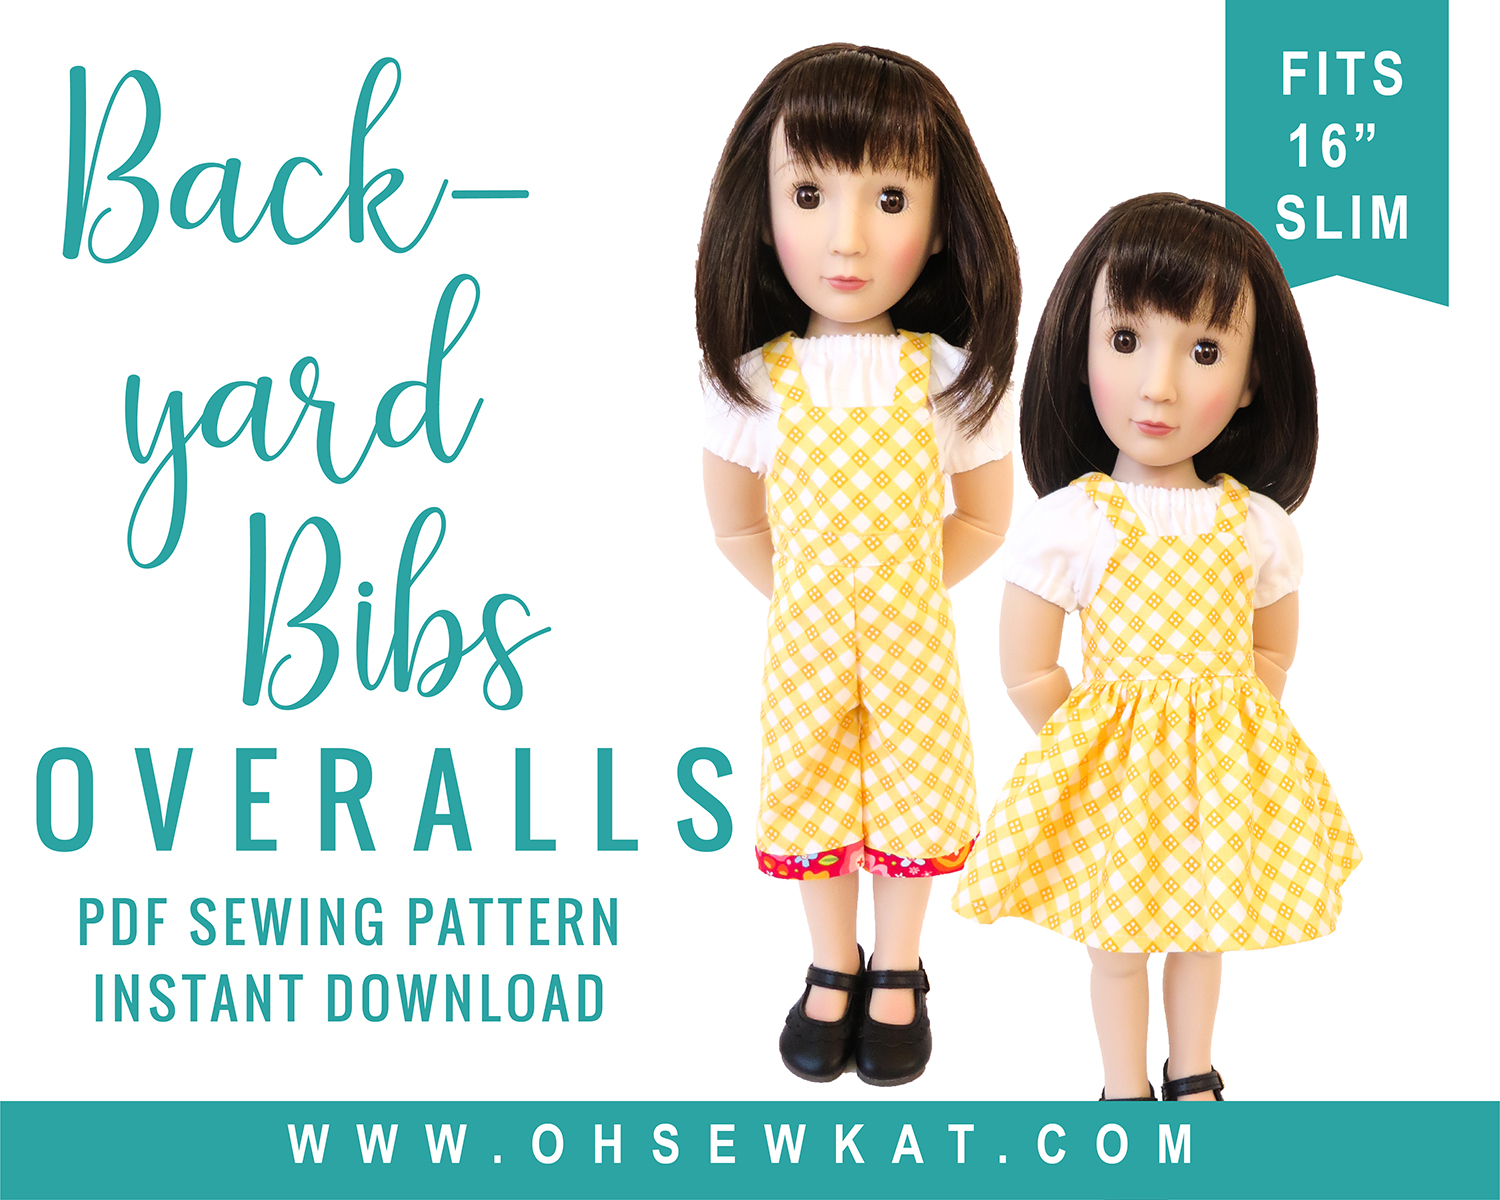 photo relating to Barbie Dress Patterns Free Printable Pdf referred to as Barbie Skirt Styles Free of charge Printable Pdf